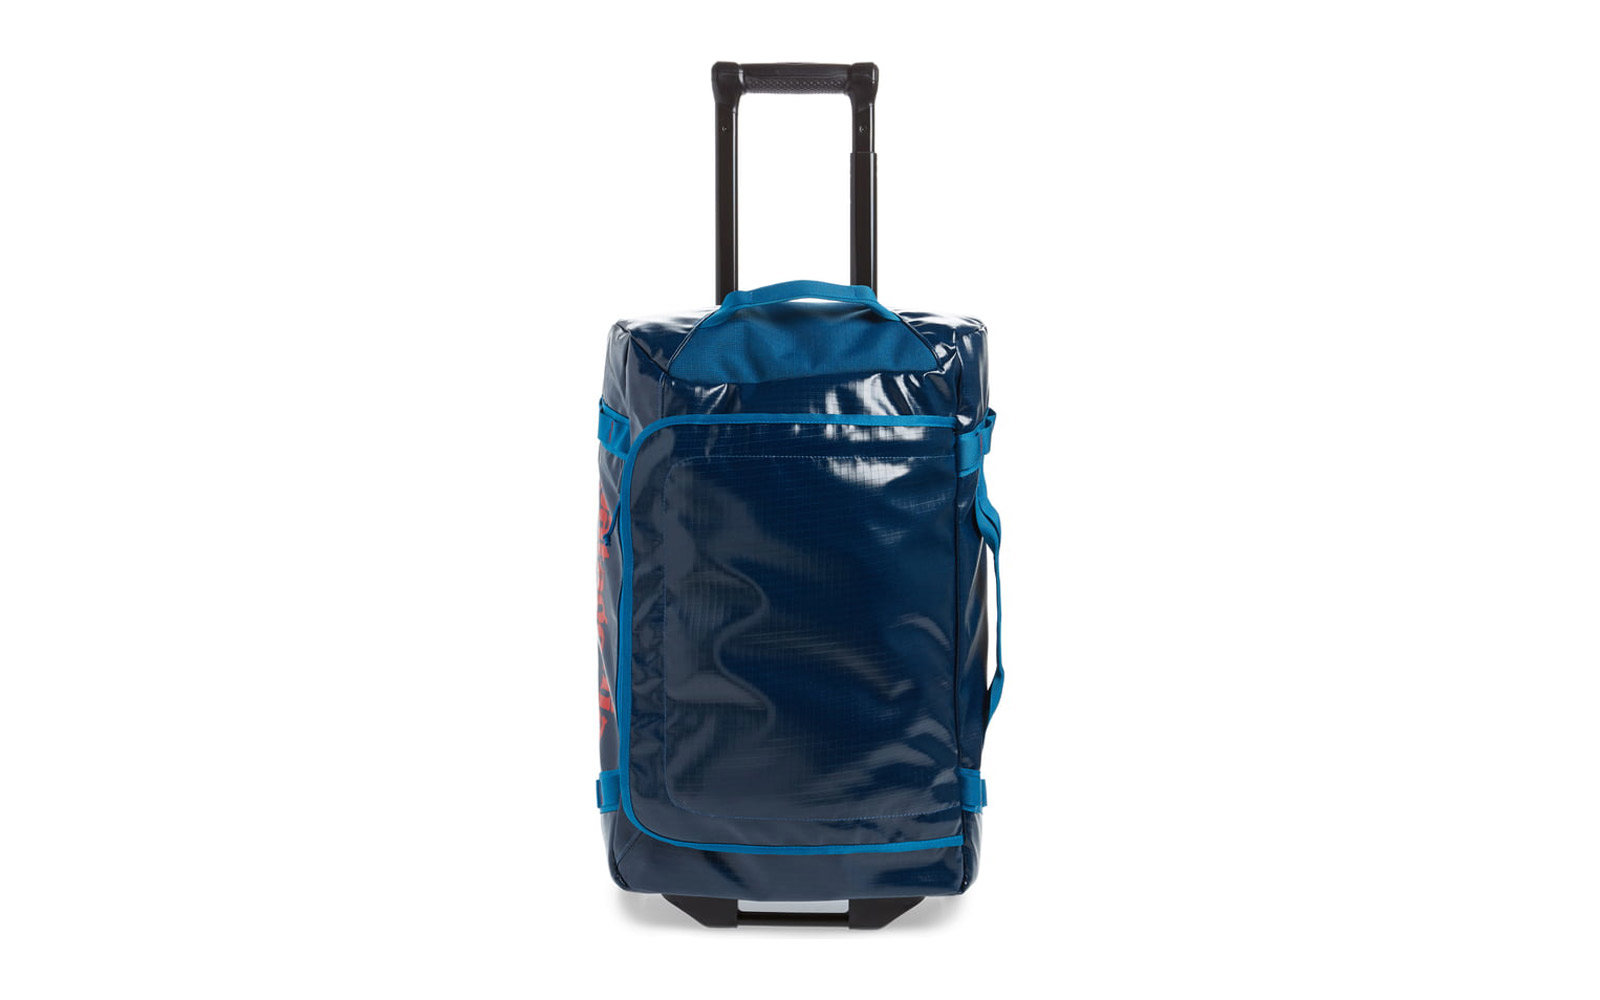 Patagonia Black Hole 40L Rolling Duffle Bag